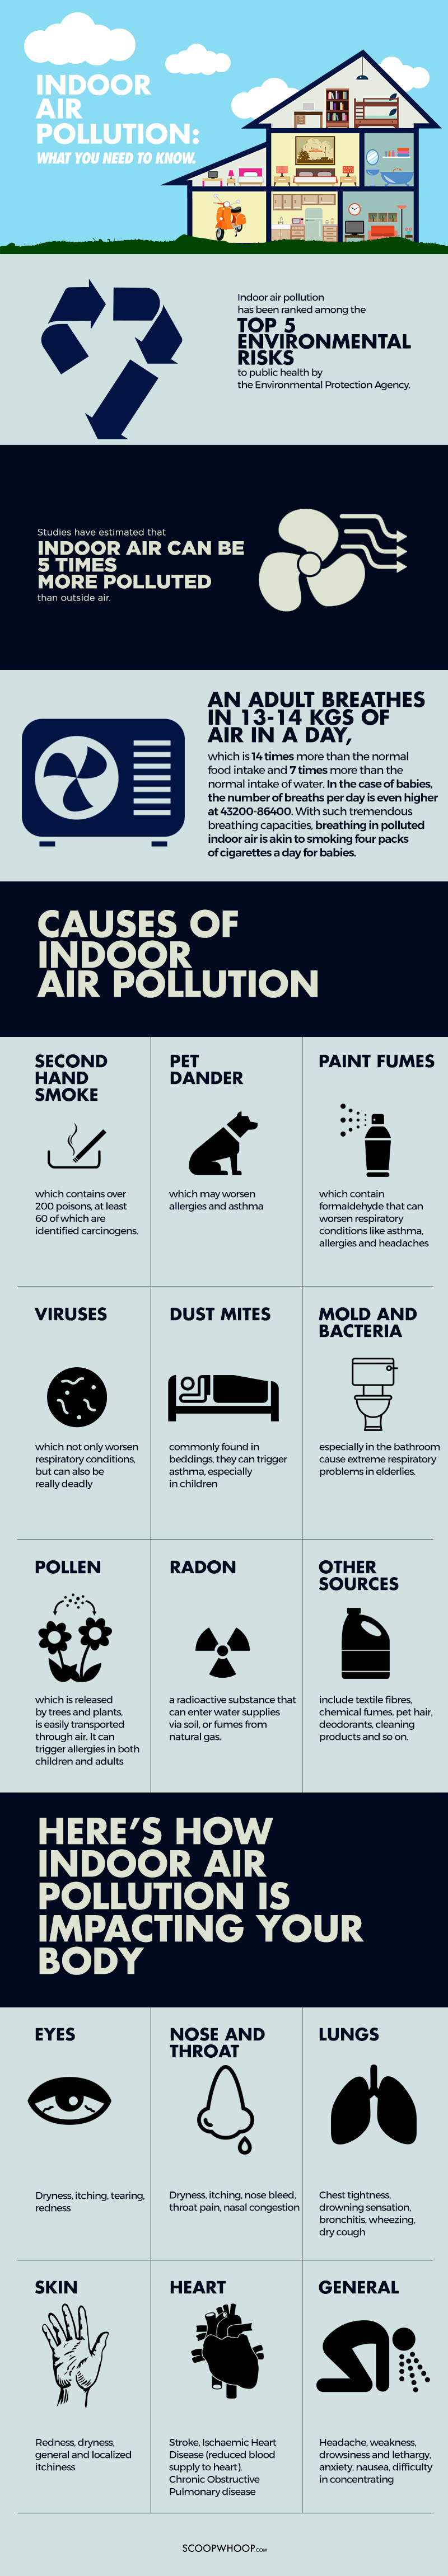 Here Are The Causes Effects And Solutions To The Indoor Air Pollution Indoor Air Pollution